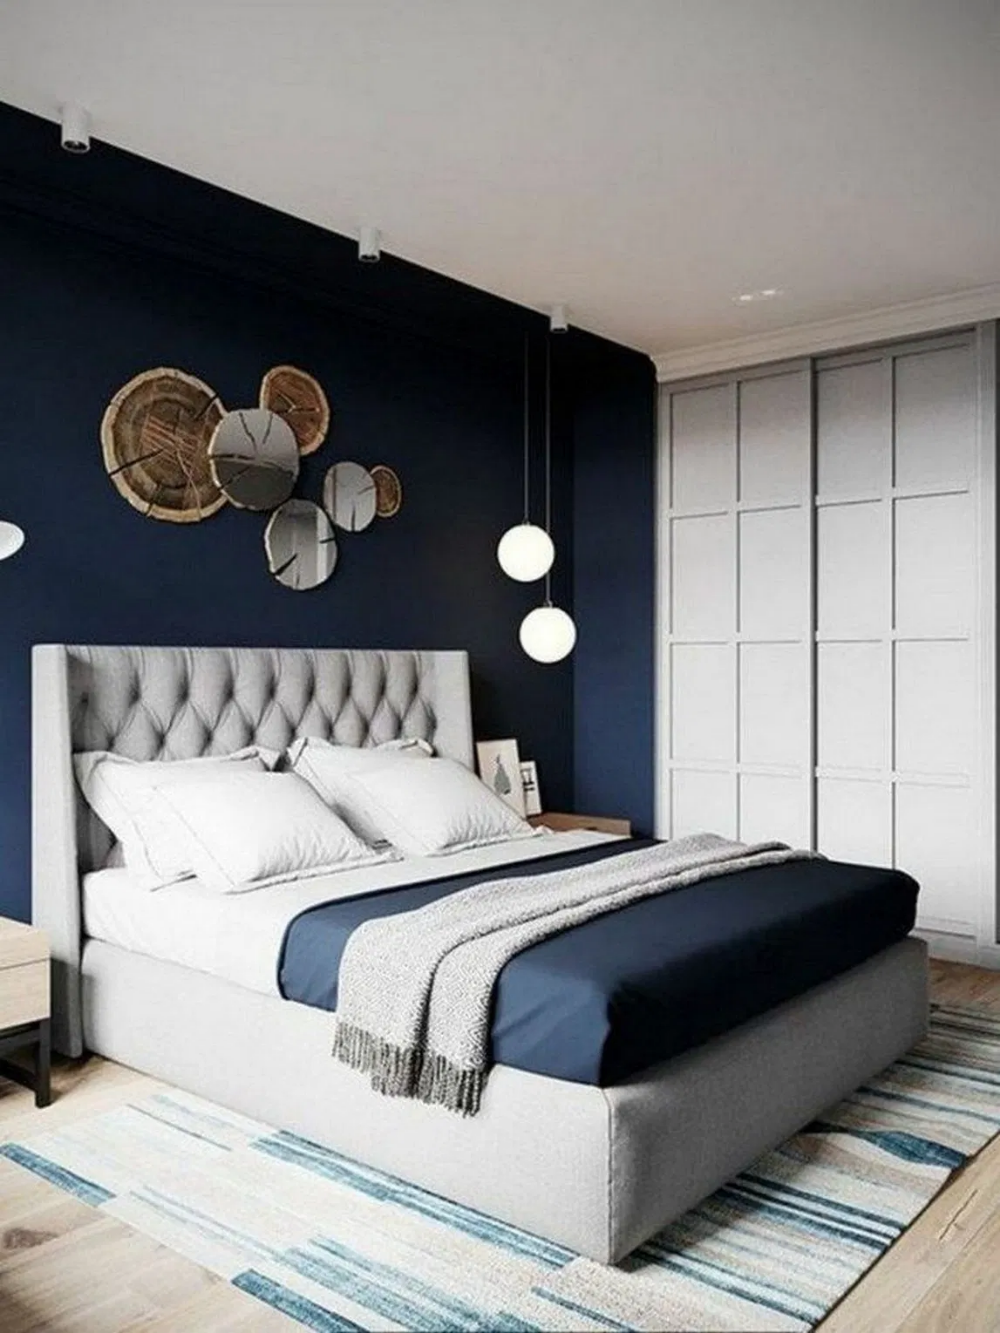 Our Blue Bedroom Blue Bedroom Decor Navy Blue Bedroom Decor Grey And Gold Bedroom